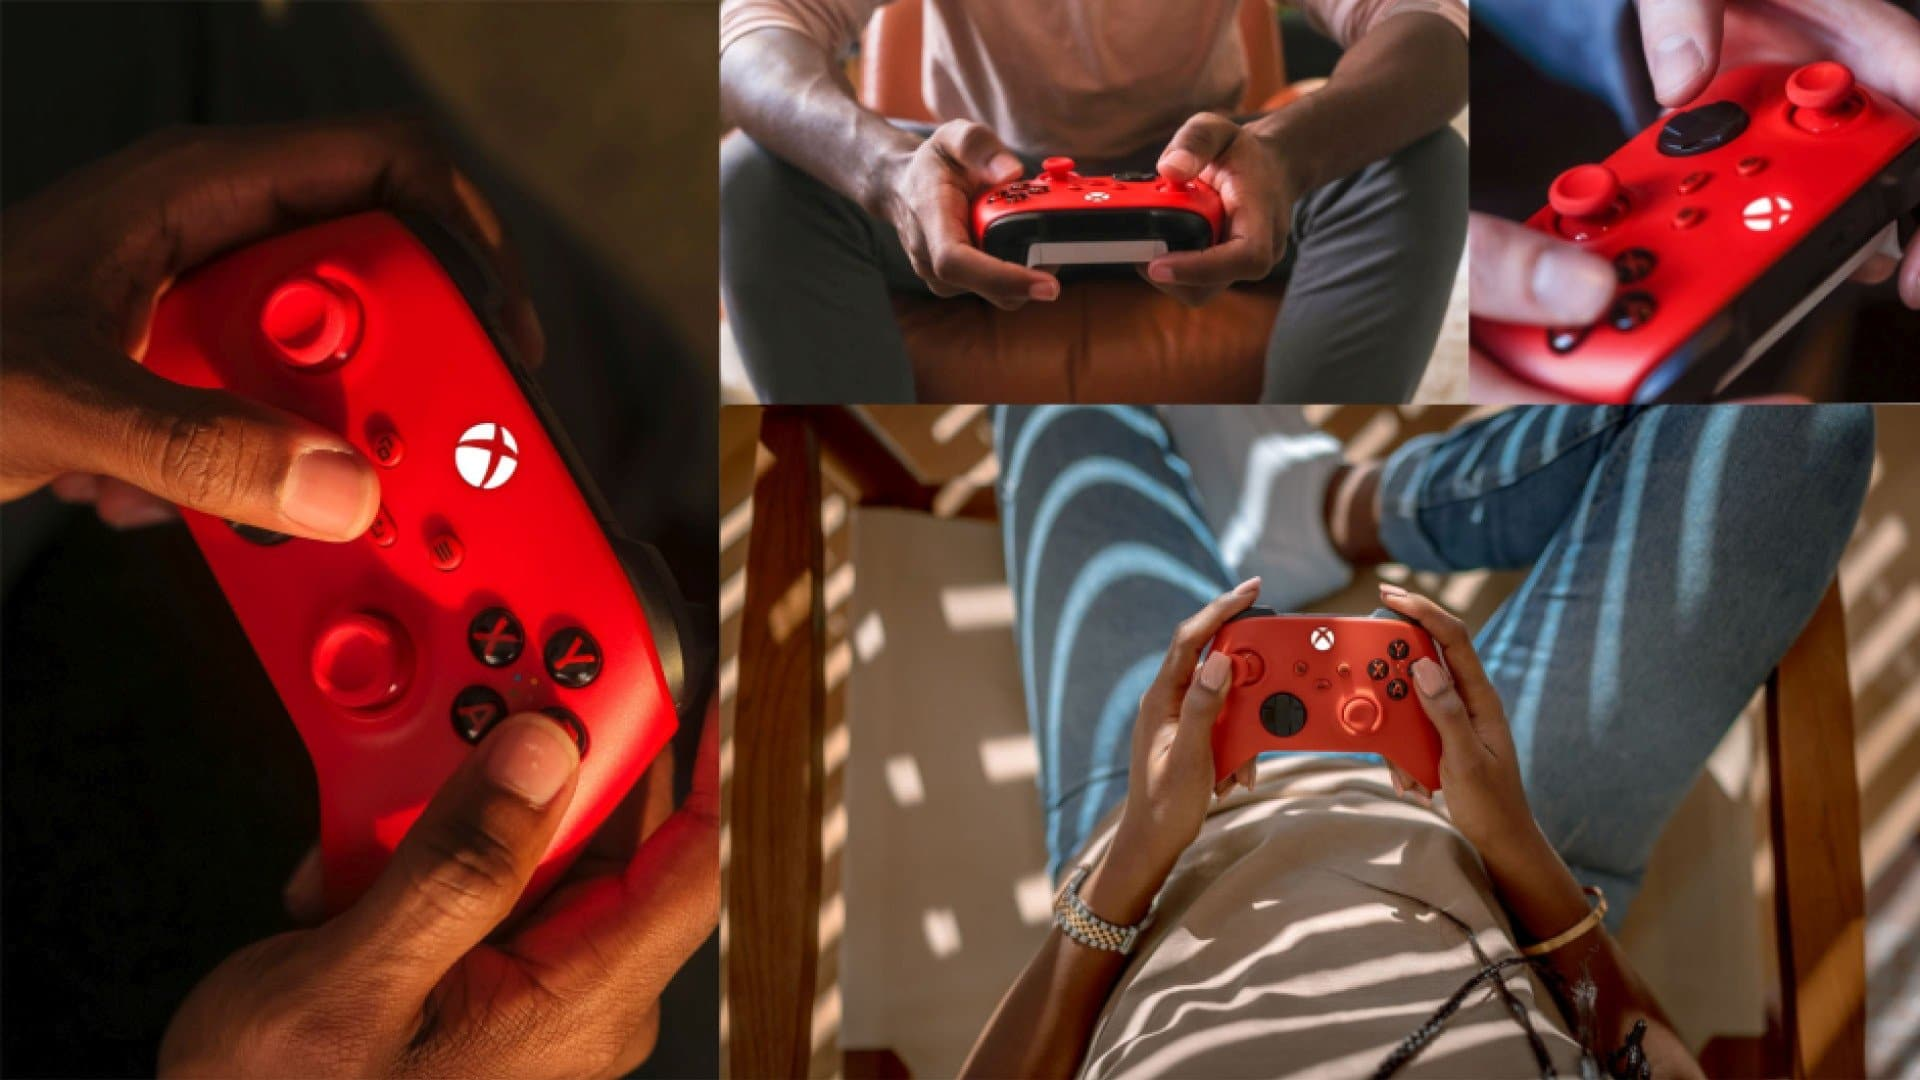 Microsoft Unveils New Xbox Gamepad in Pulse Red TechRechard